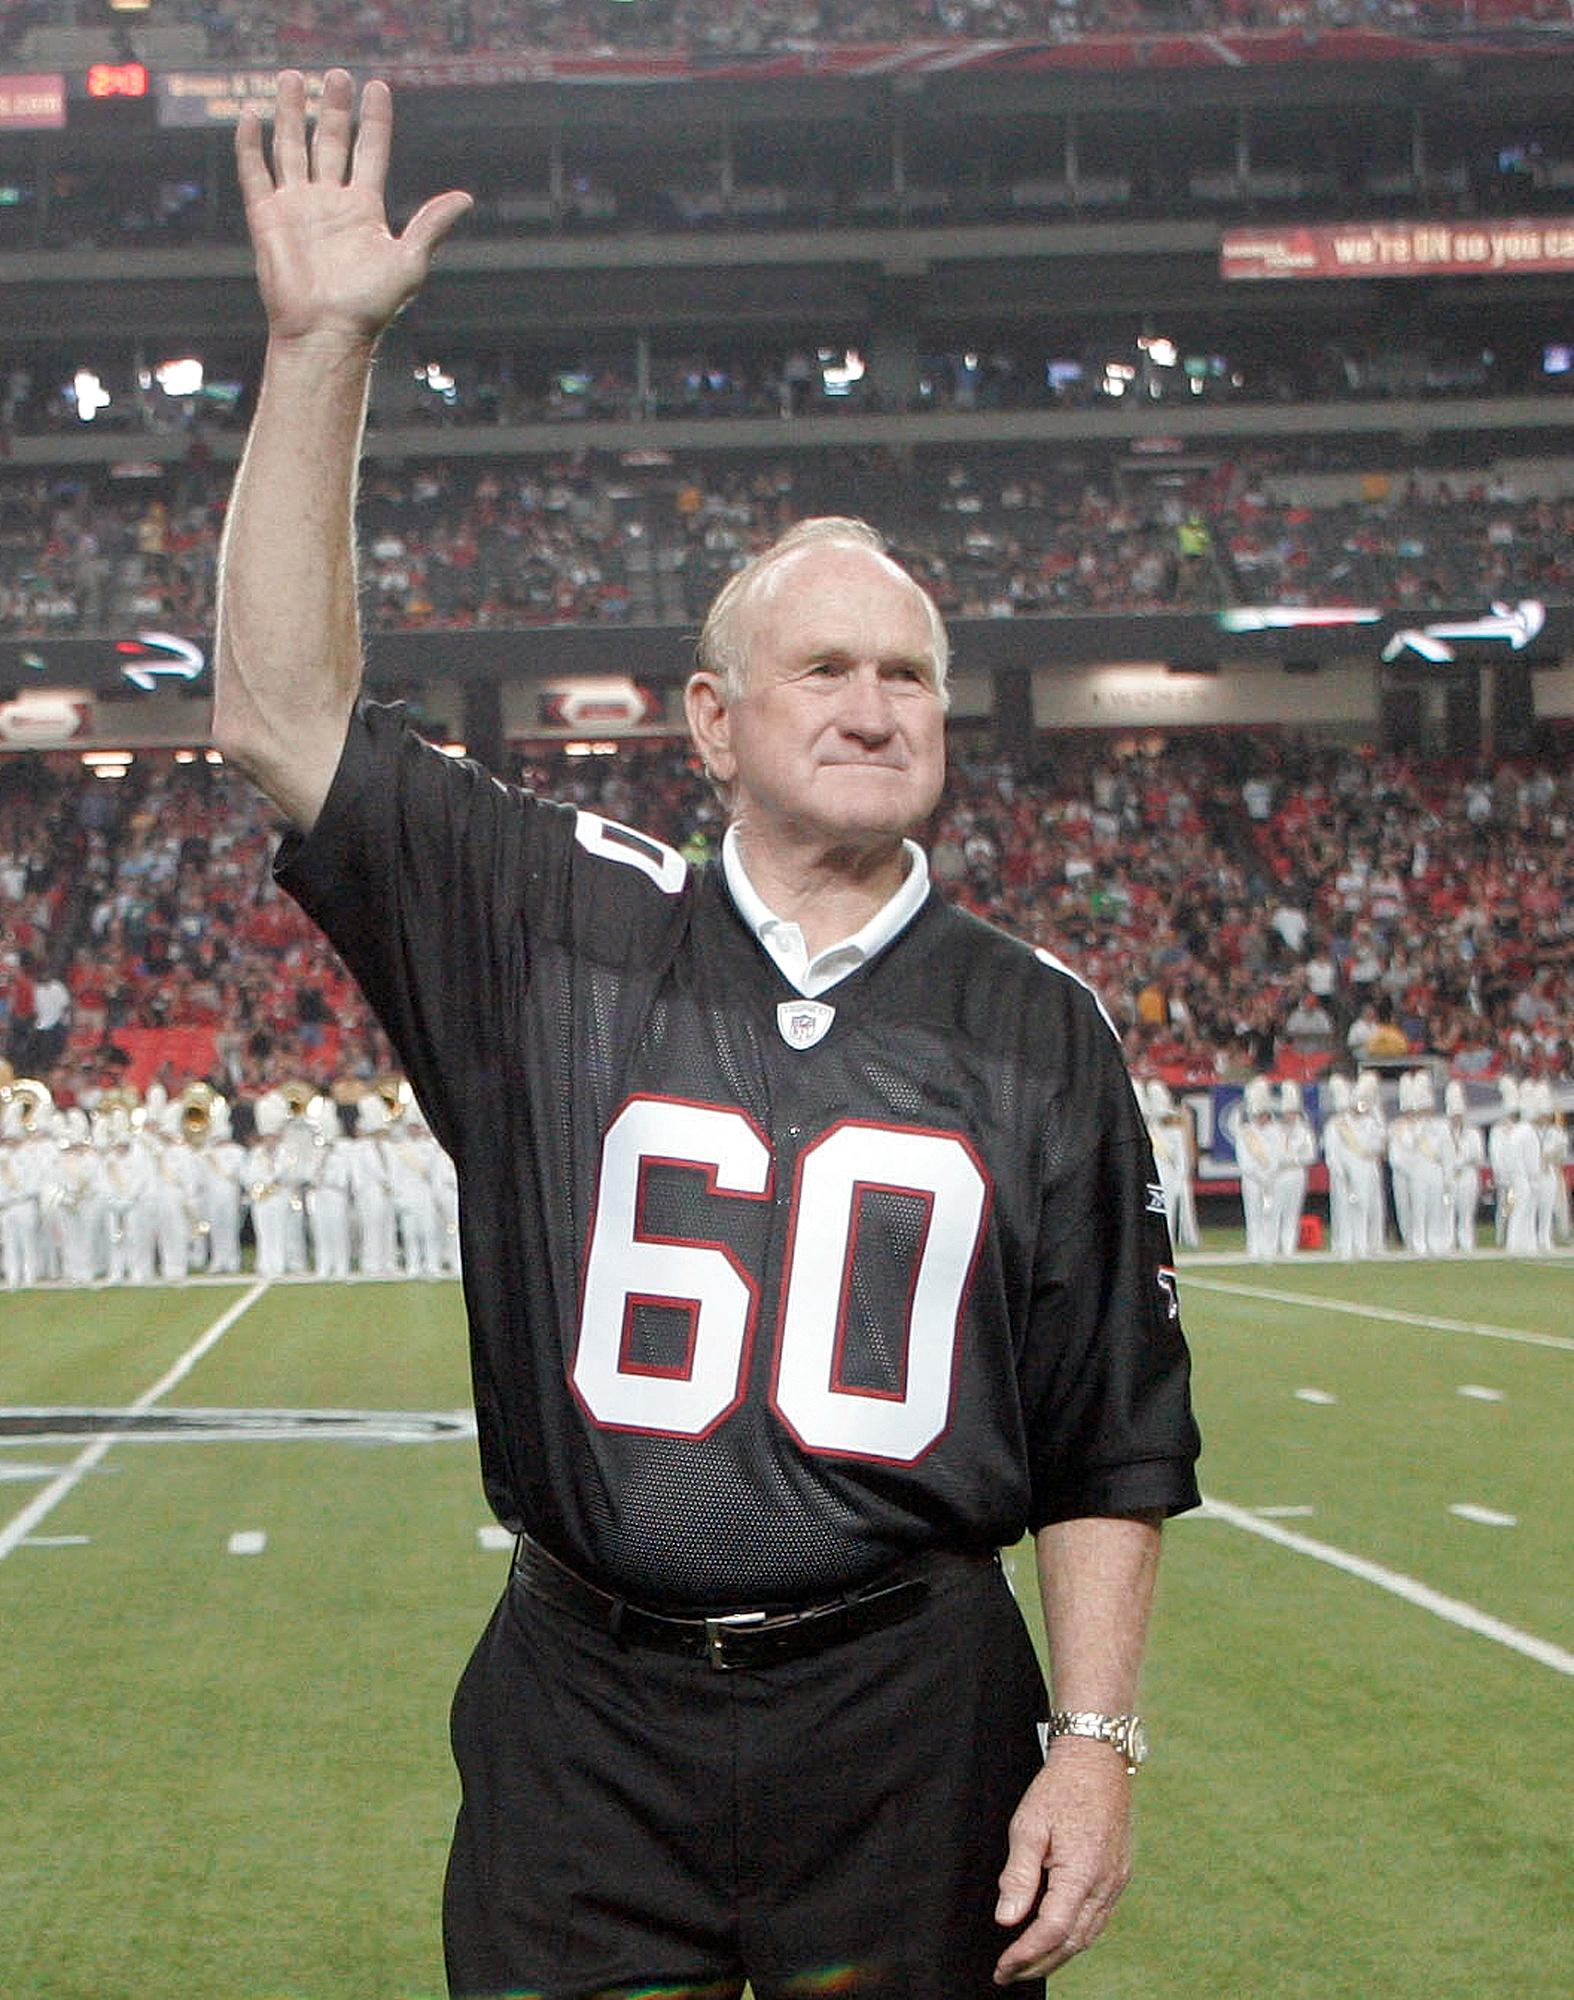 FILE - In this Sept. 20, 2009, file photo, former Atlanta Falcons Pro Bowler Tommy Nobis (60), the first player ever drafted by the franchise, is introduced along with other members of the 1966 inaugural team during halftime of an NFL football game against the Carolina Panthers in Atlanta. Nobis, the first player ever drafted by Atlanta in 1966 and a hard-hitting linebacker who went on to spent his entire 11-year career with the team, died Wednesday, Dec. 13, 2017, after an extended illness, the team announced. He was 74.  (AP Photo/John Amis, File)